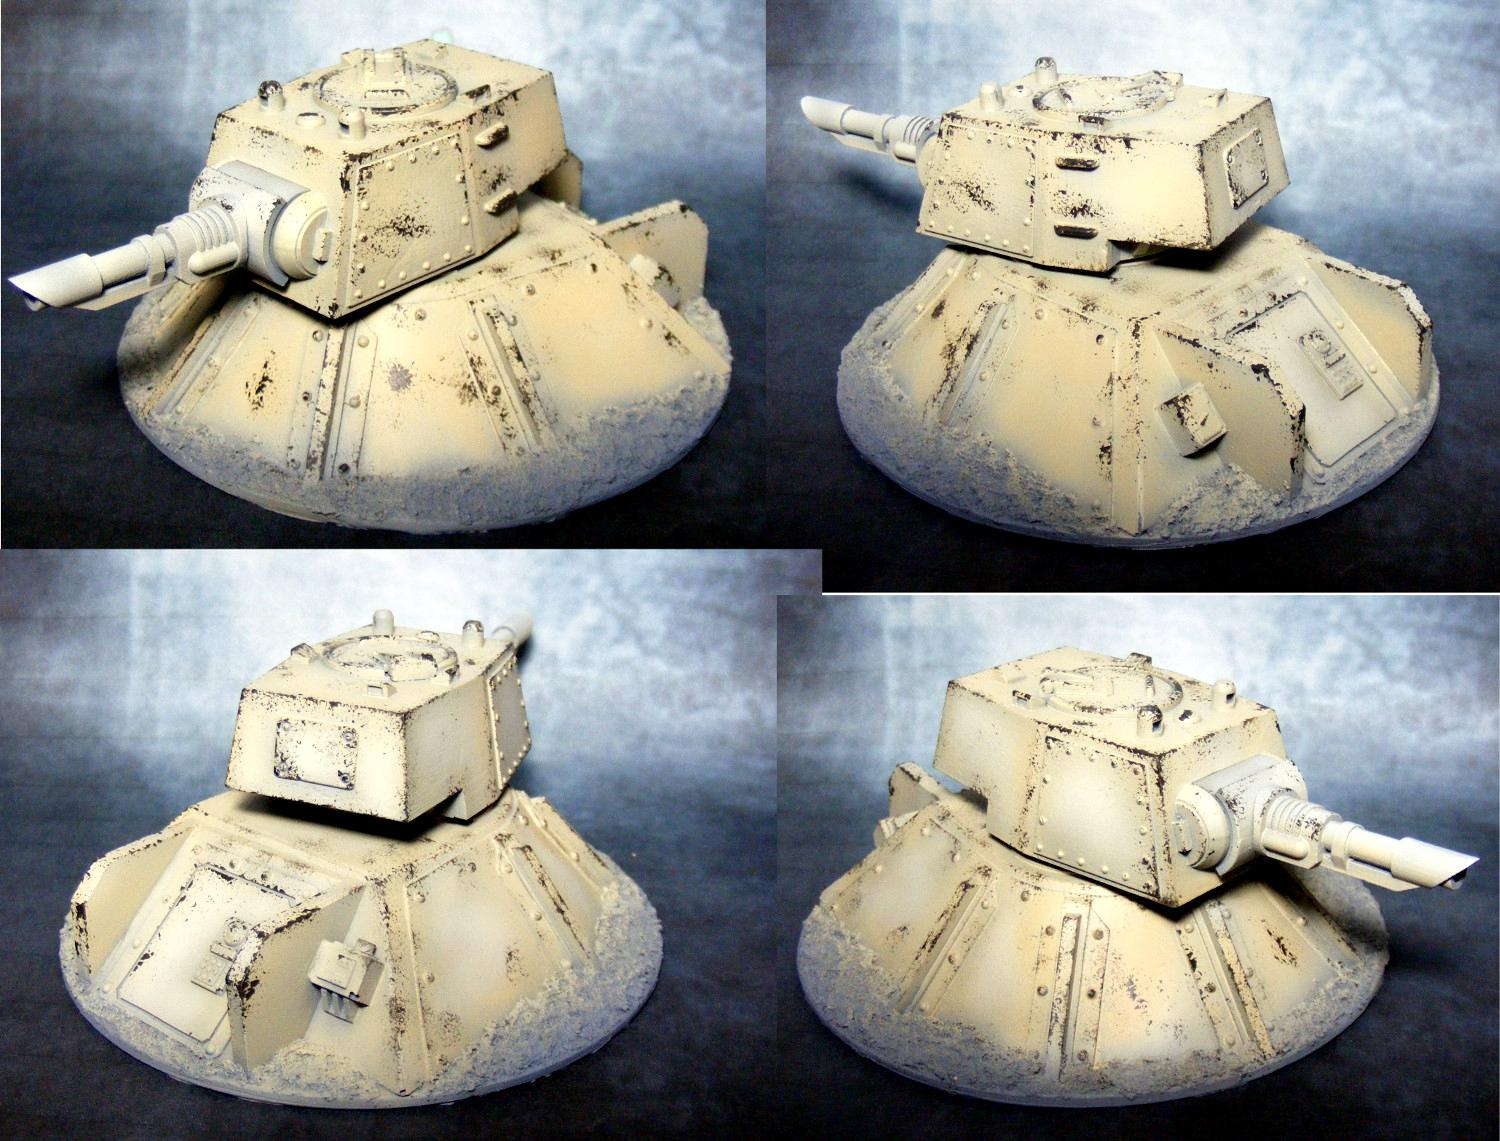 Astra Militarum, Emplacement, Imperial Guard, Resin, Scratch Build, Turret, Weathered